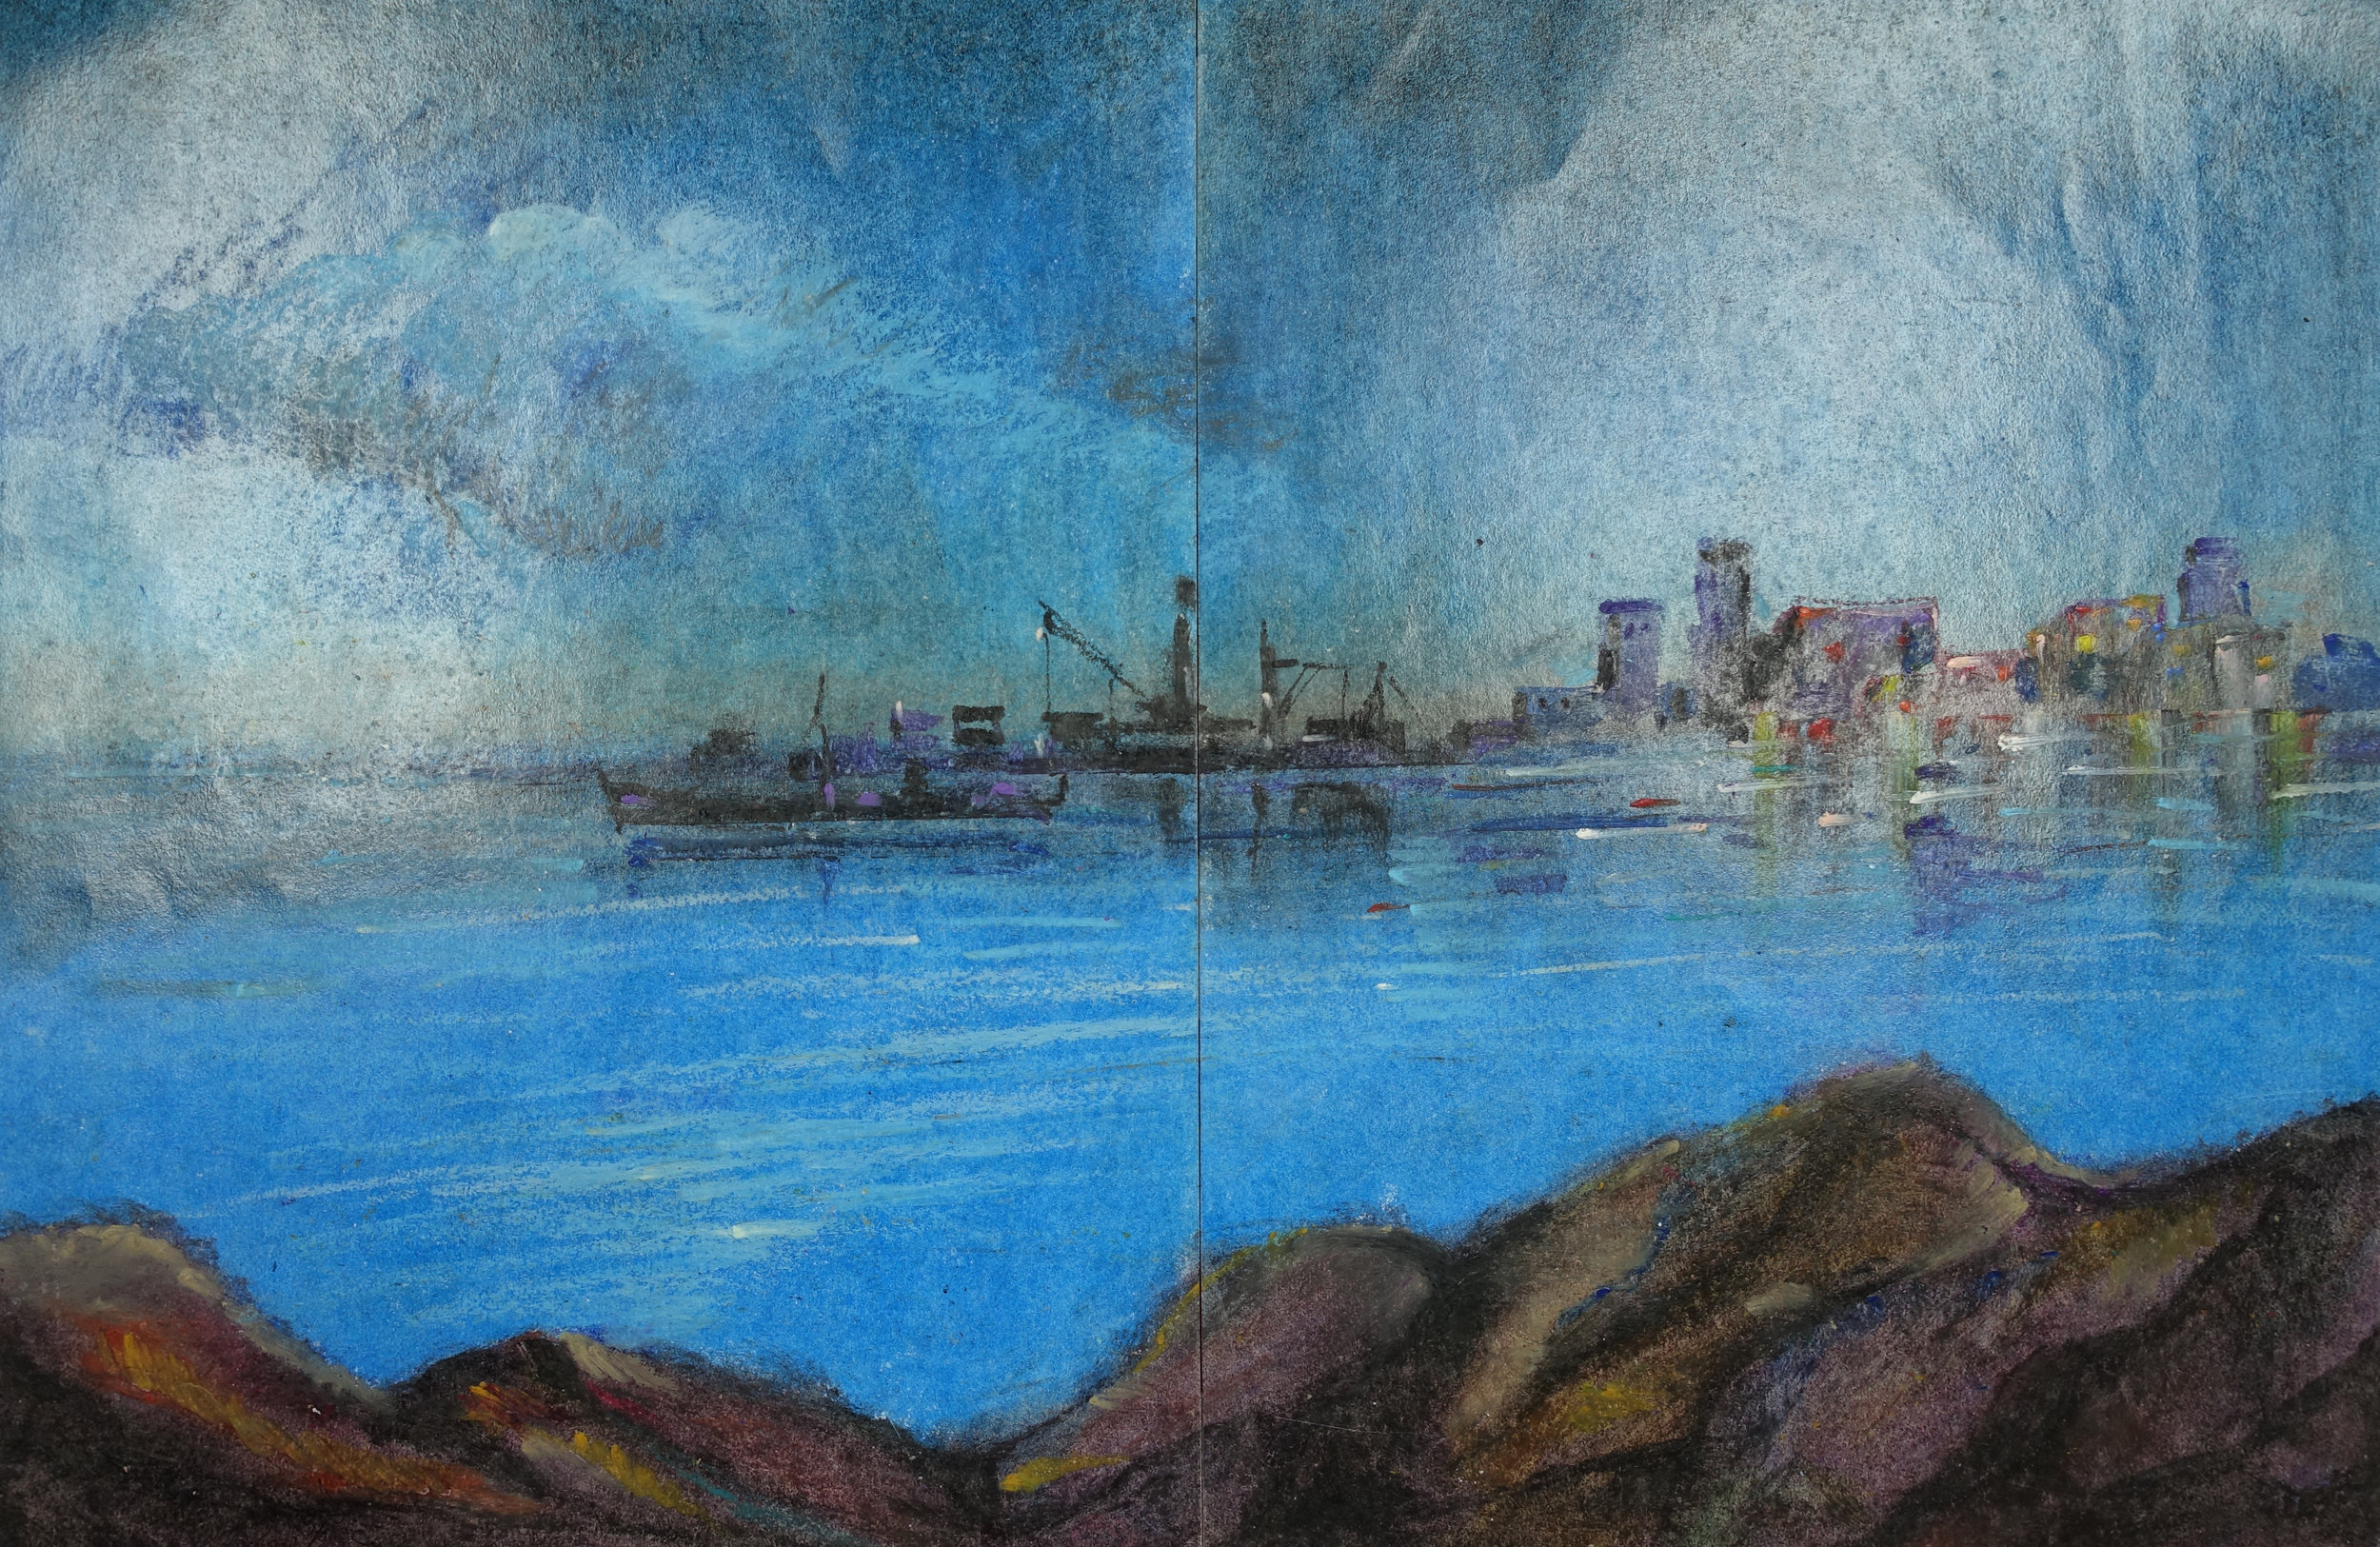 Ghaleb Al-Bihani, Large Ship against a Skyline, 2015.